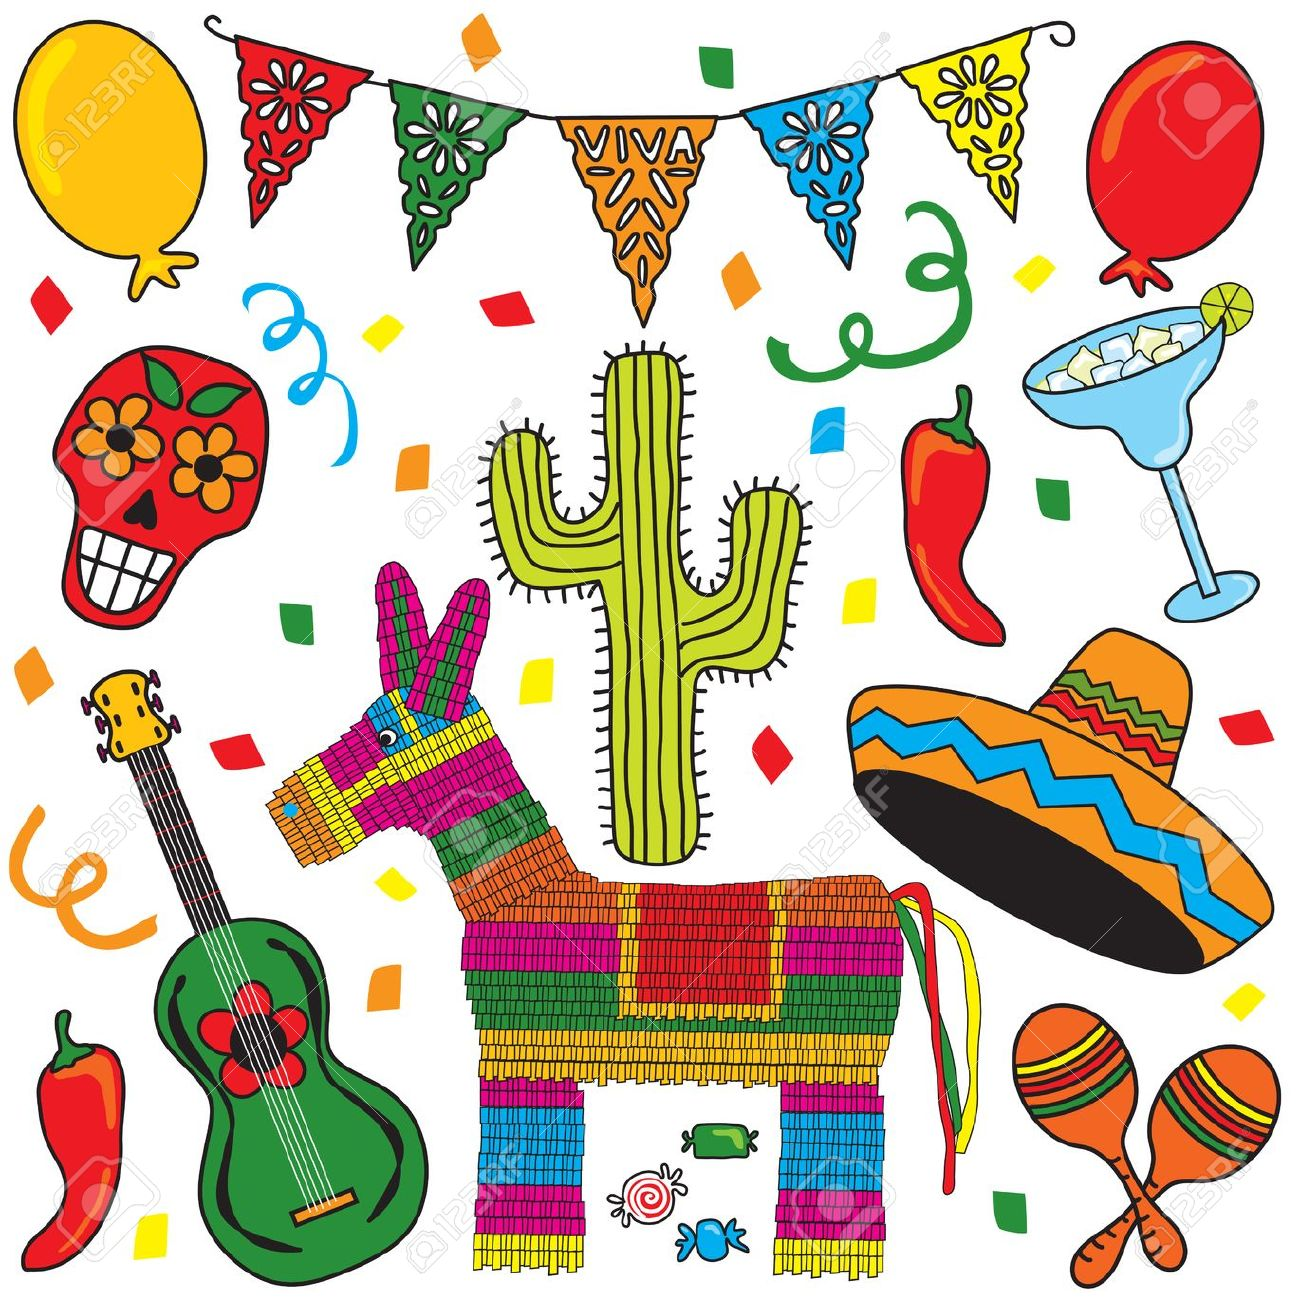 Free clipart images fiesta svg black and white download Clip art Mexican Fiesta | Clipart Panda - Free Clipart Images svg black and white download